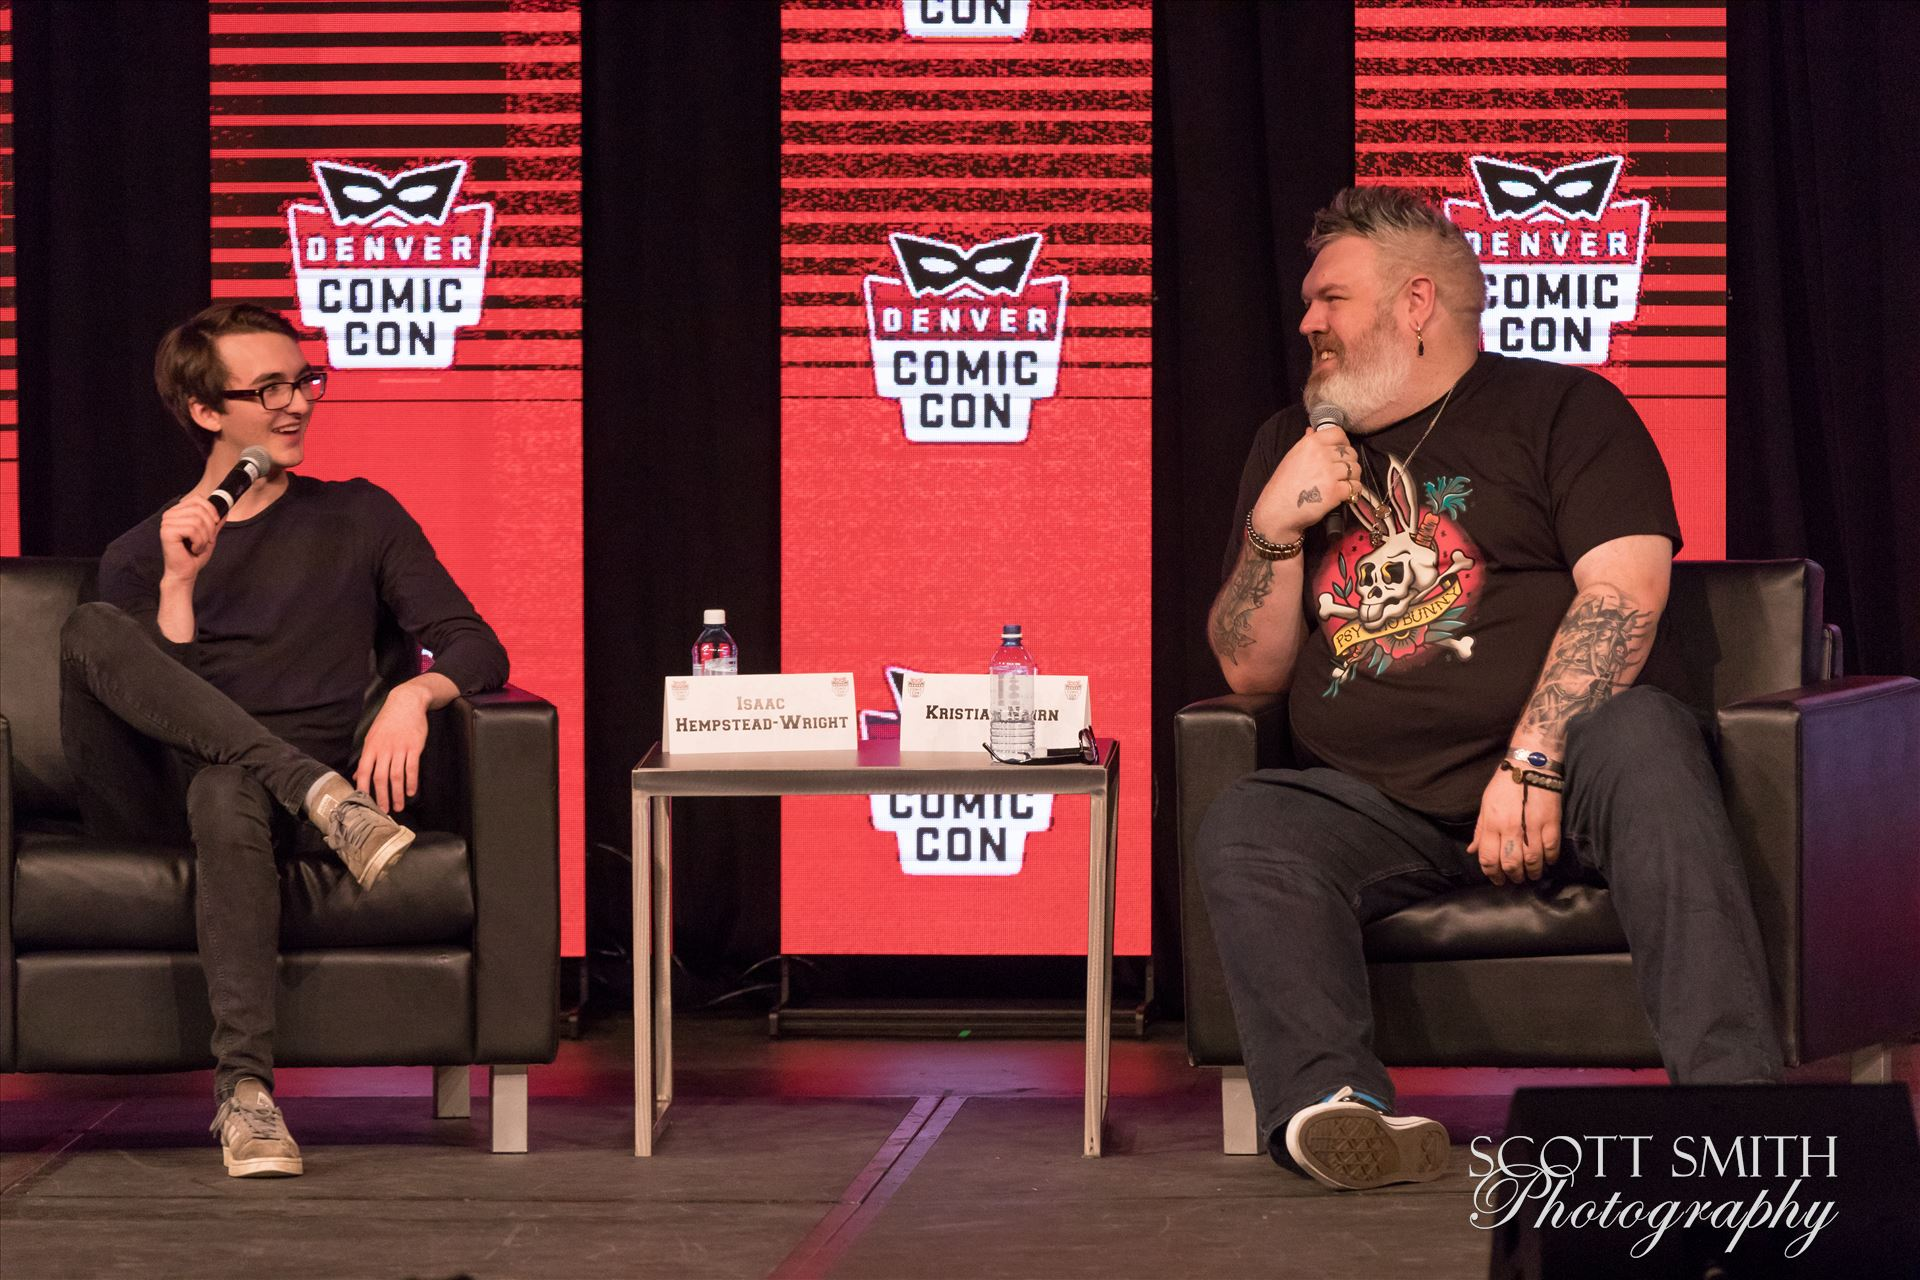 Game of Thrones'-  Bran and Hodor, Isaac Hempstead Wright and Kristian Nairn at Denver Comic Con 2018 -  by D Scott Smith